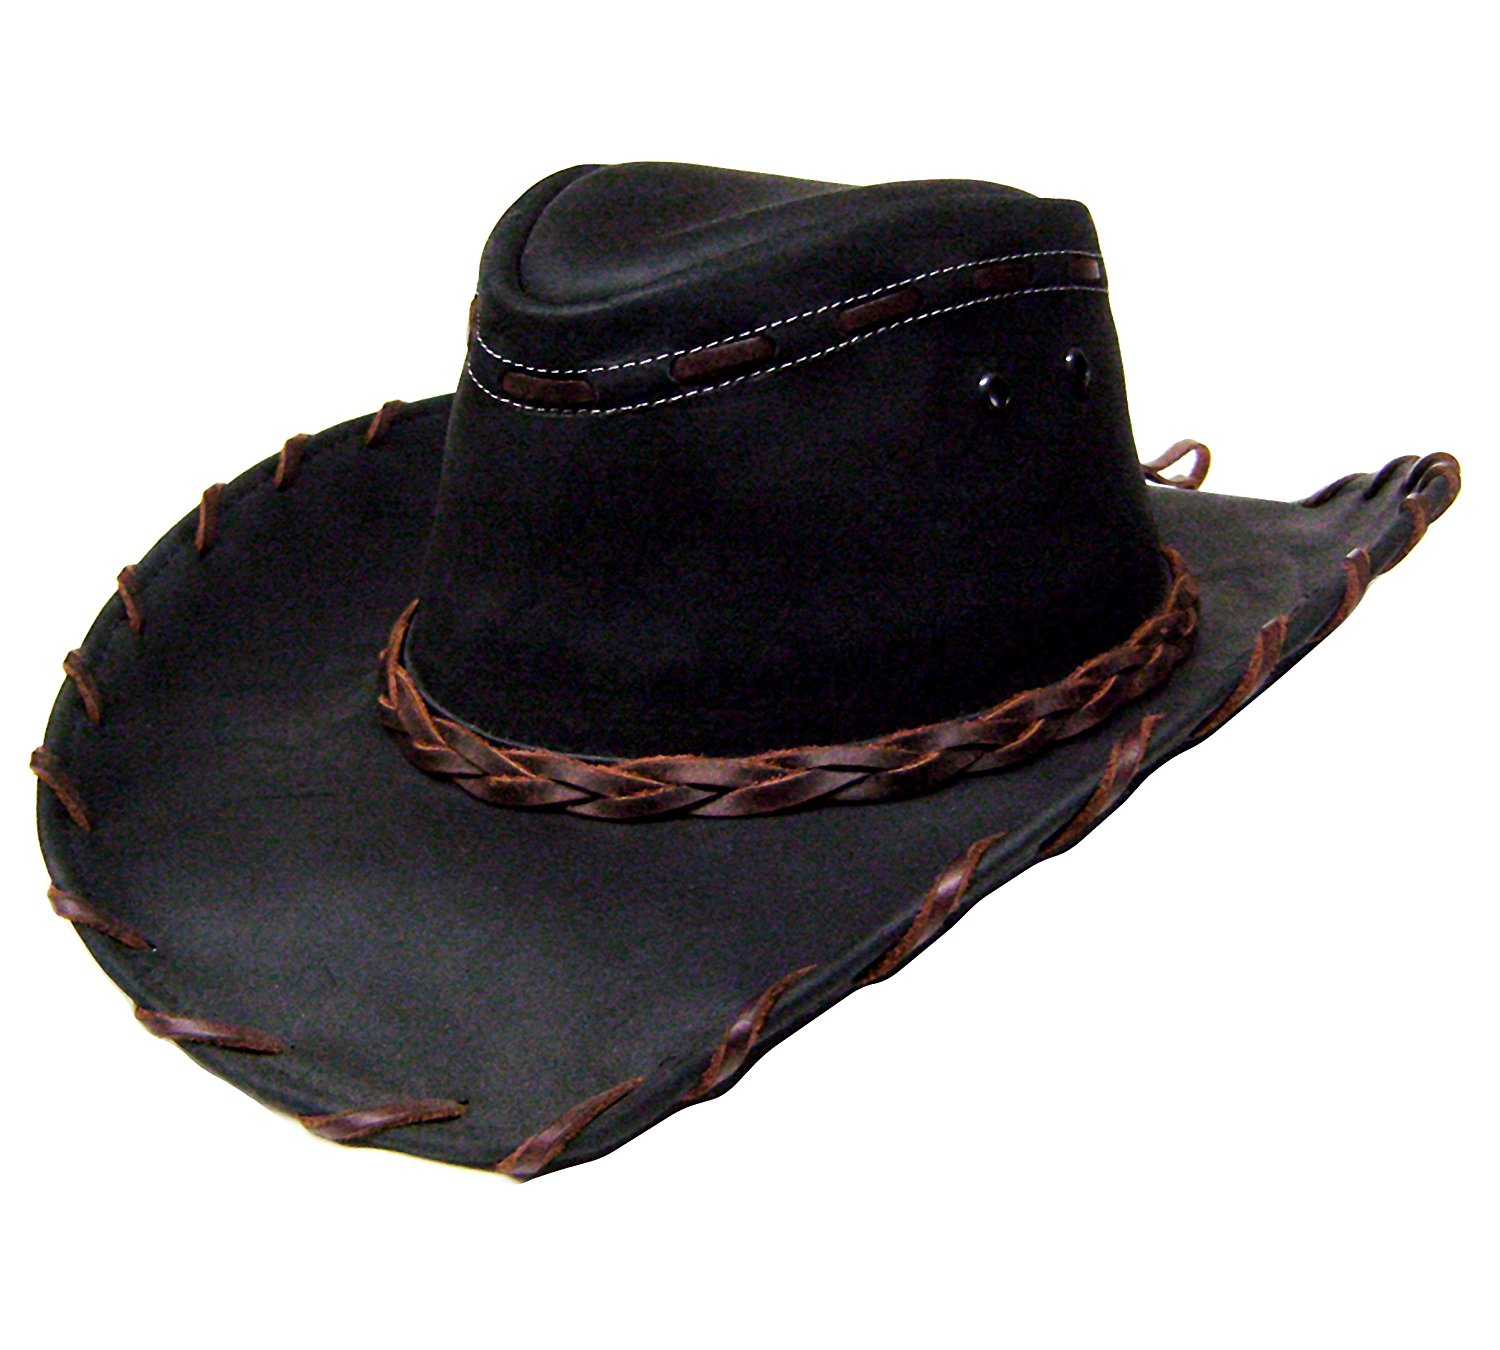 "18fe694087fe3 Get Quotations · Modestone Unisex Leather Cowboy Hat Lacing ""Sizes For  Small Heads"" Black"